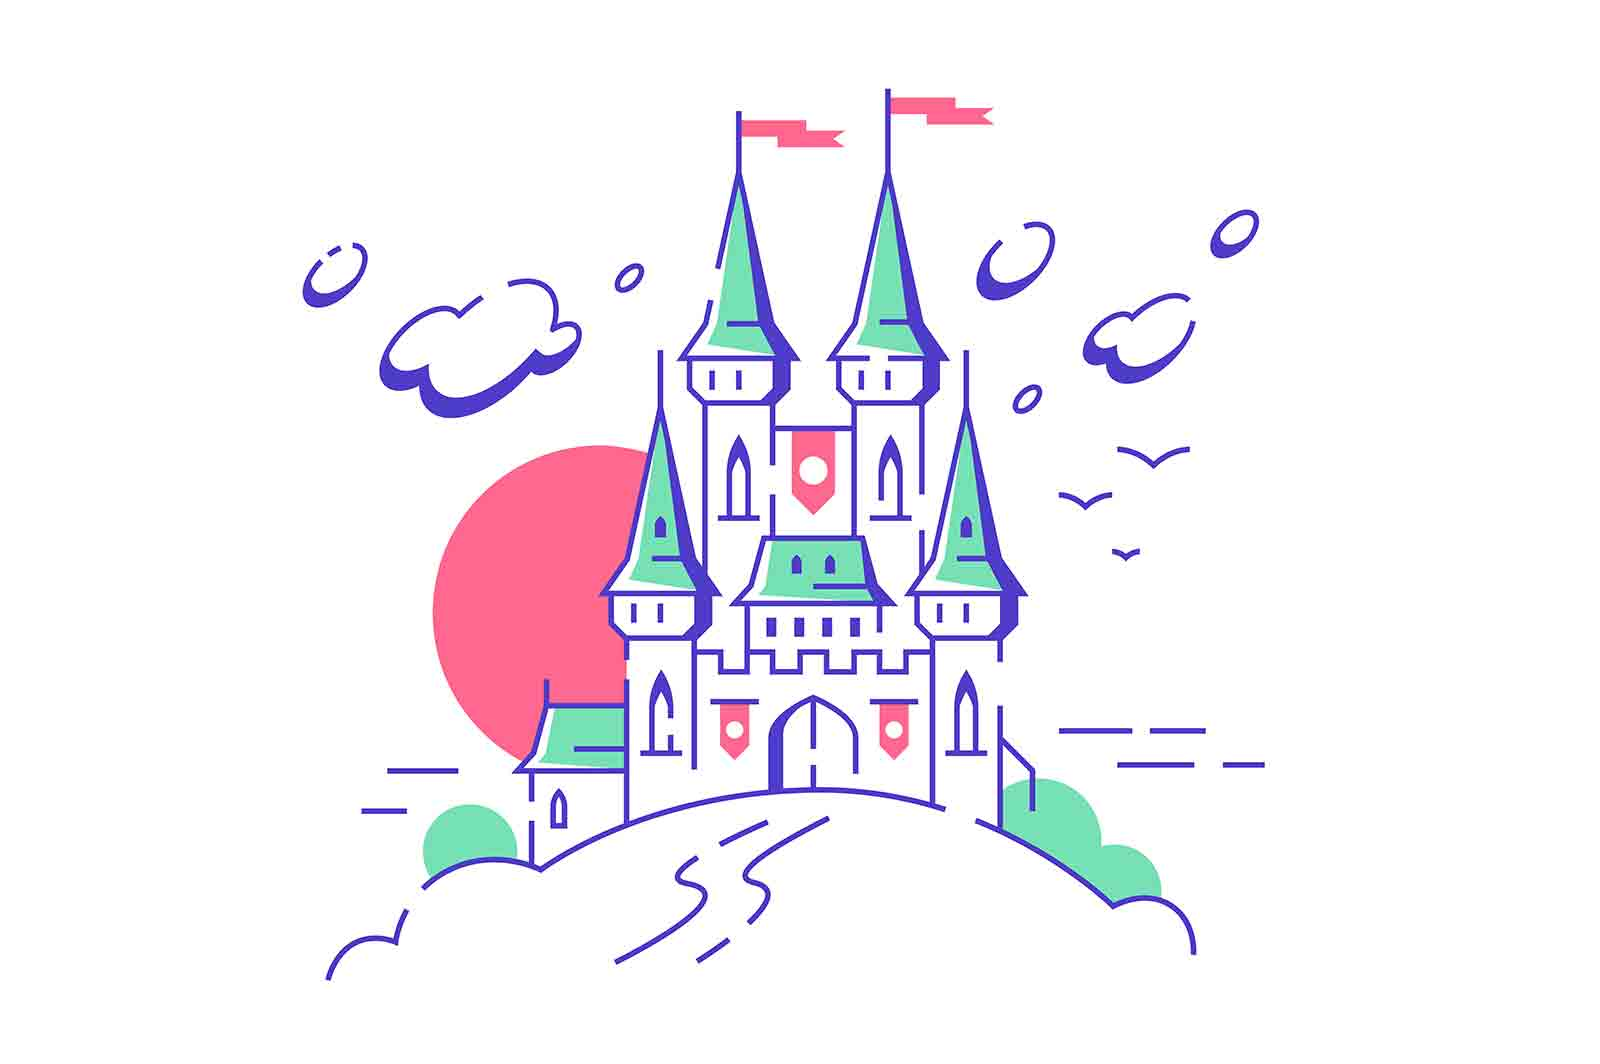 Big fairytale medieval castle towers on white background. Isolated concept of fairy king mansion fortress building with red flags and emblem from children stories. Vector illustration.